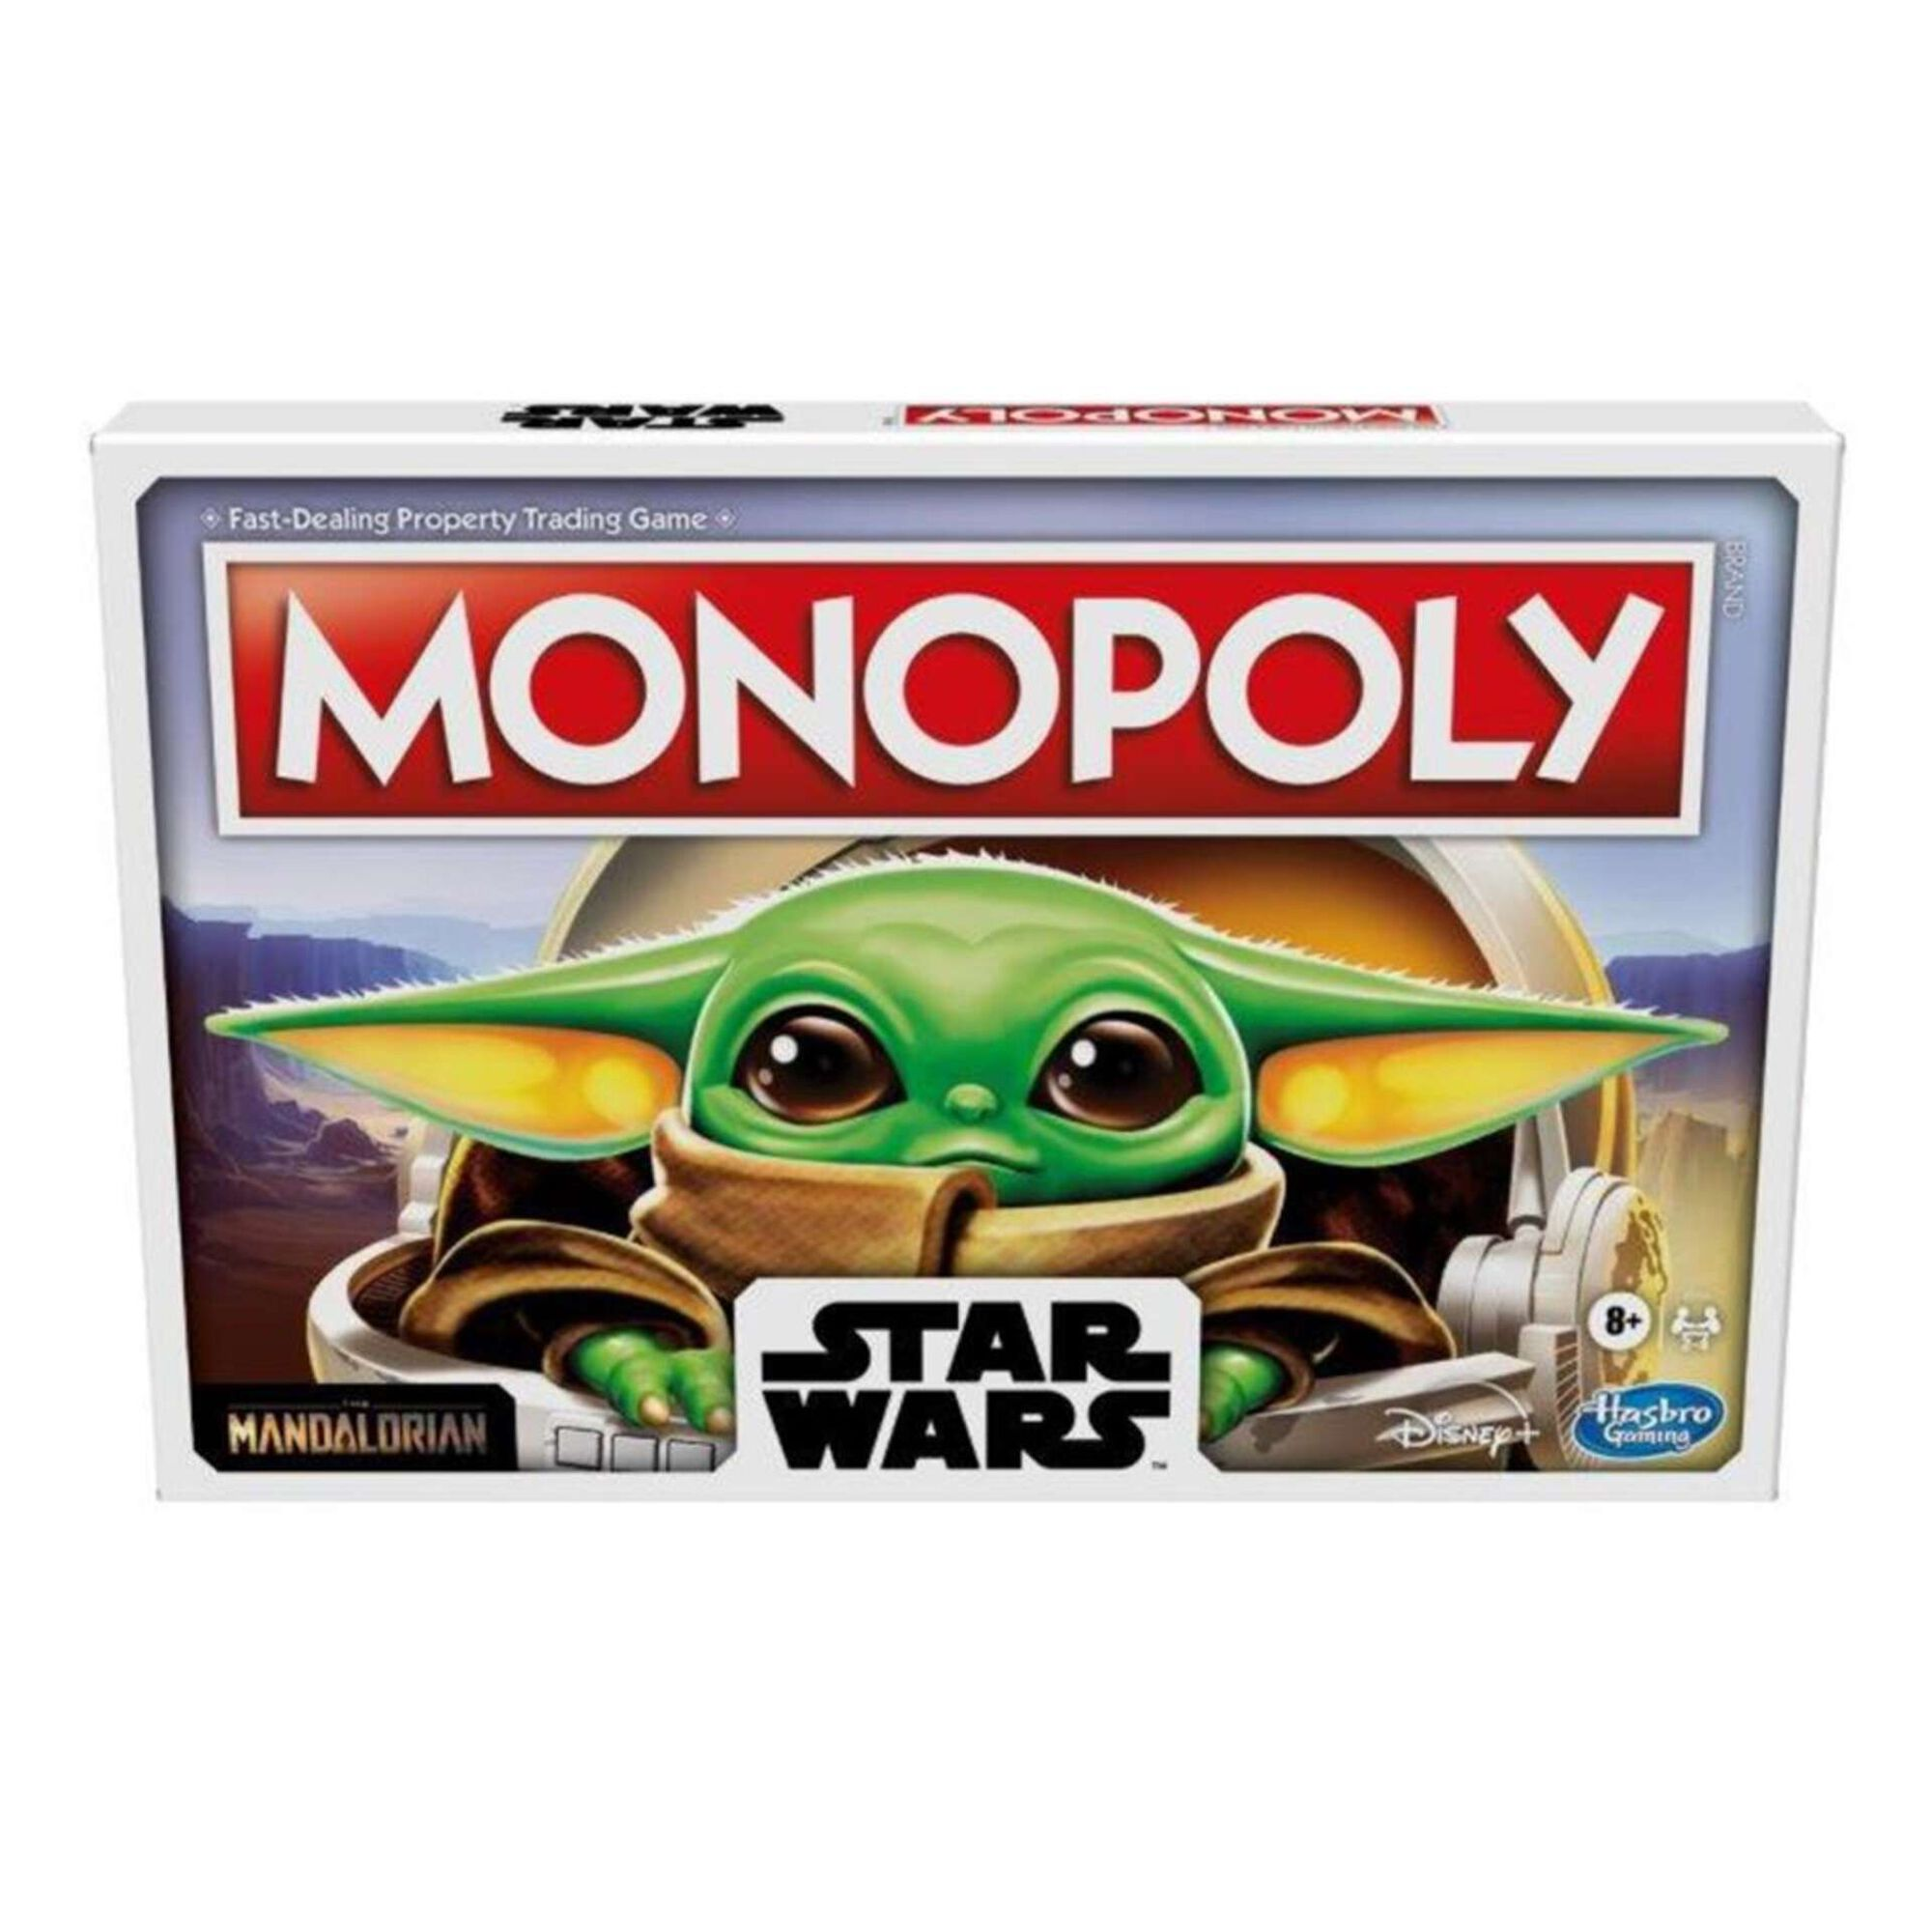 Monopoly Star Wars - The Child